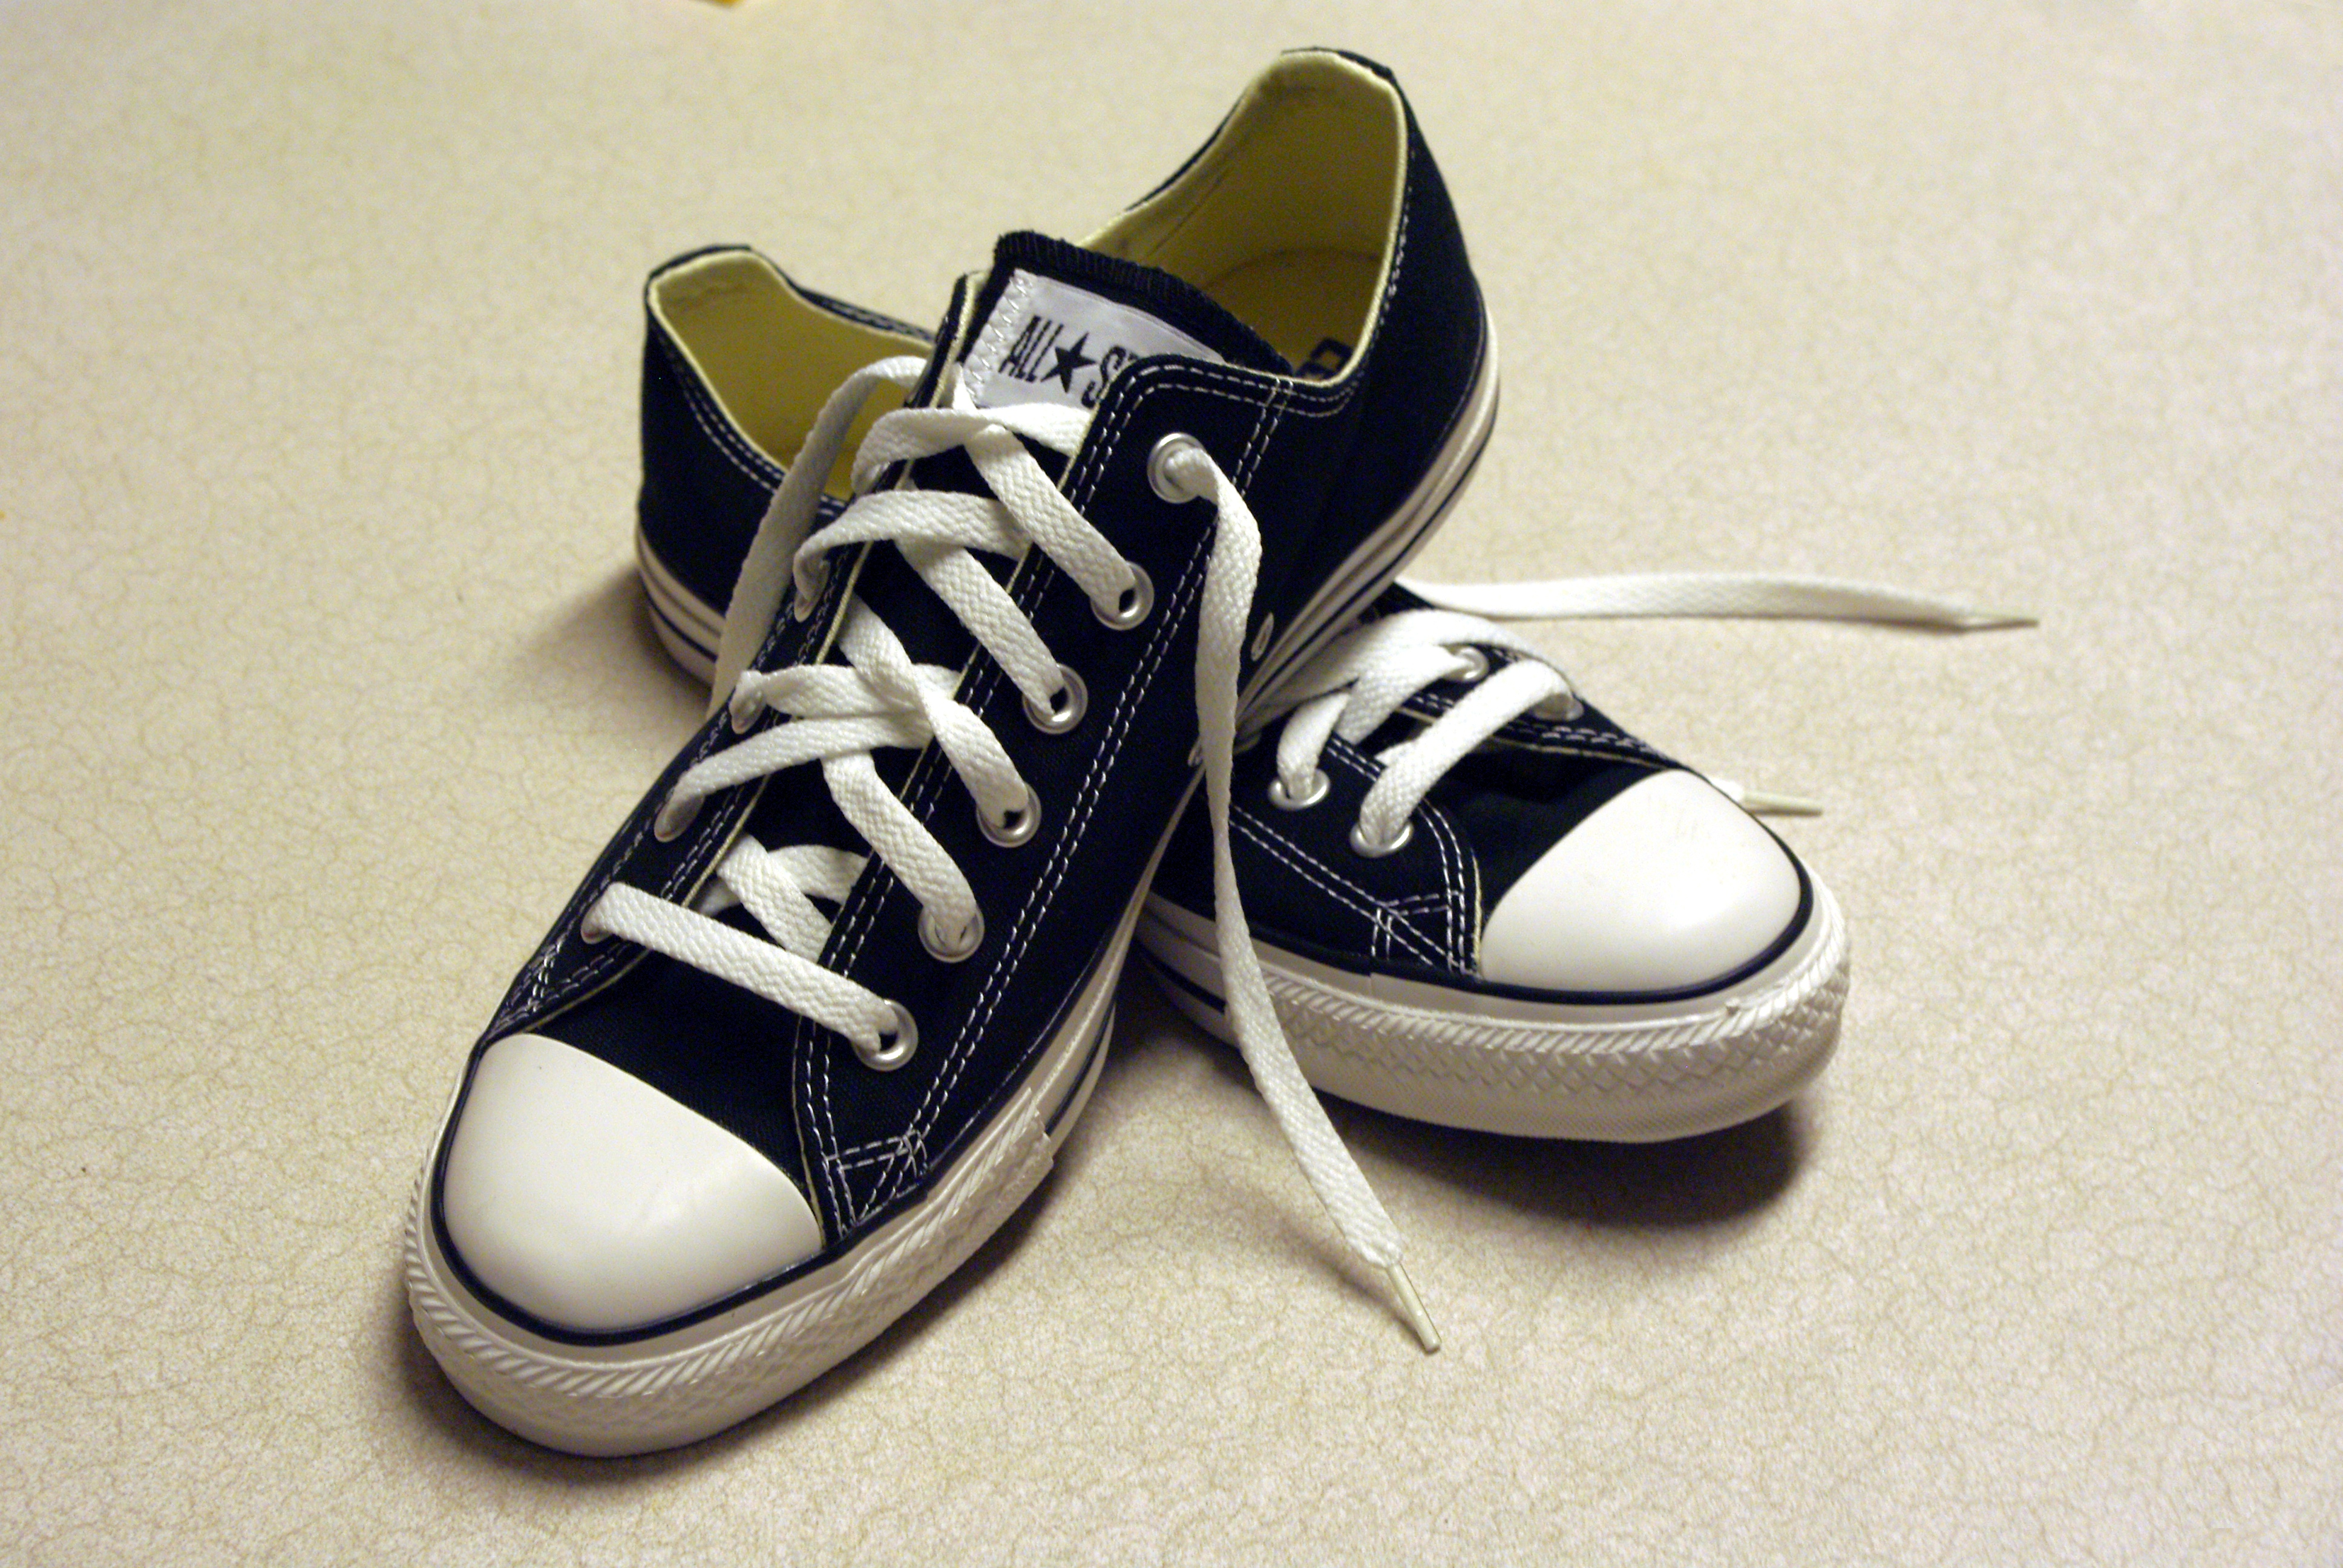 3cd99829e959 Sneakers - Wikipedia